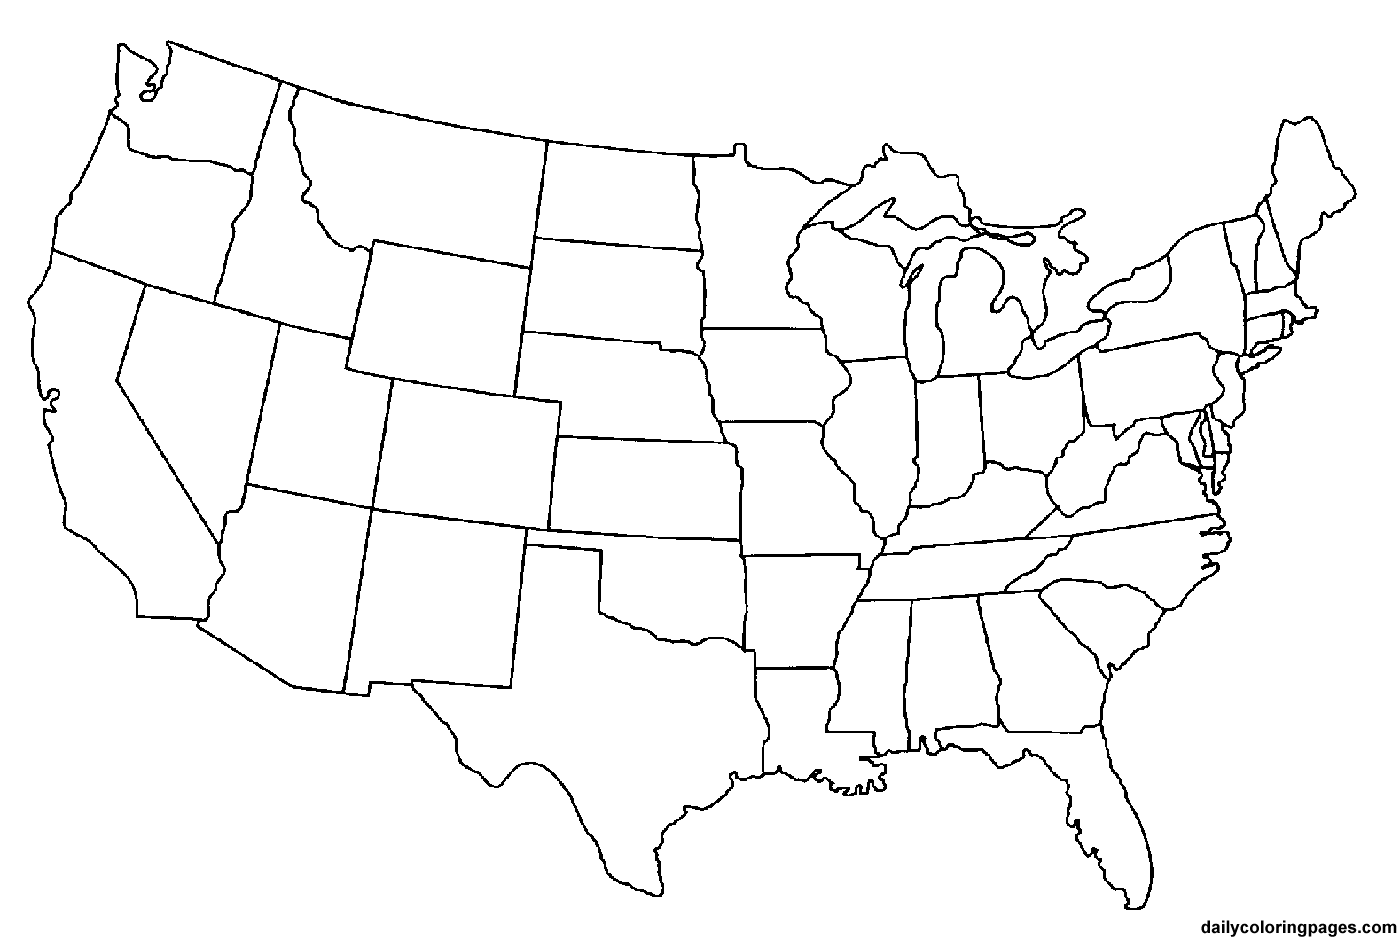 Print out a blank map of the us and have the kids color in states coresponding to the liscence plates they see on the road pass the time pinterest